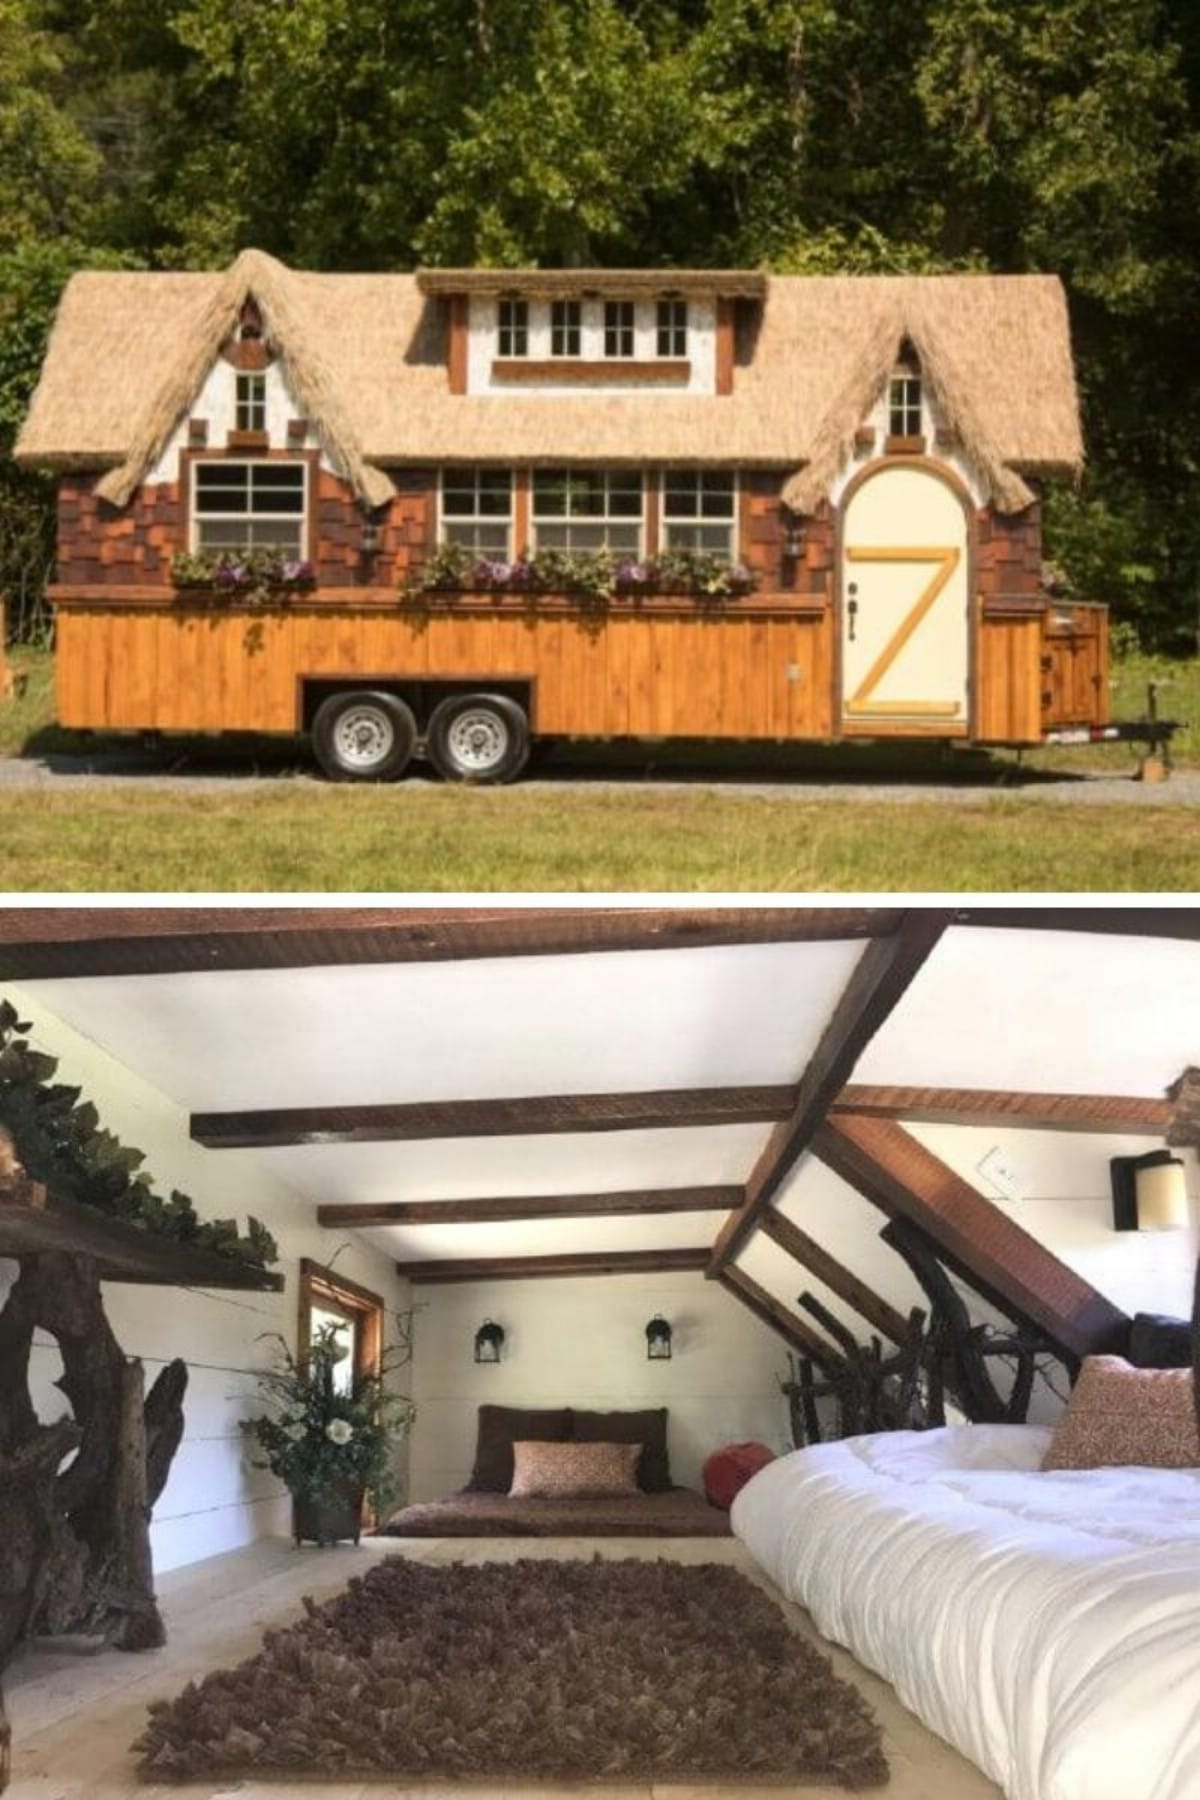 The Highland Tiny House